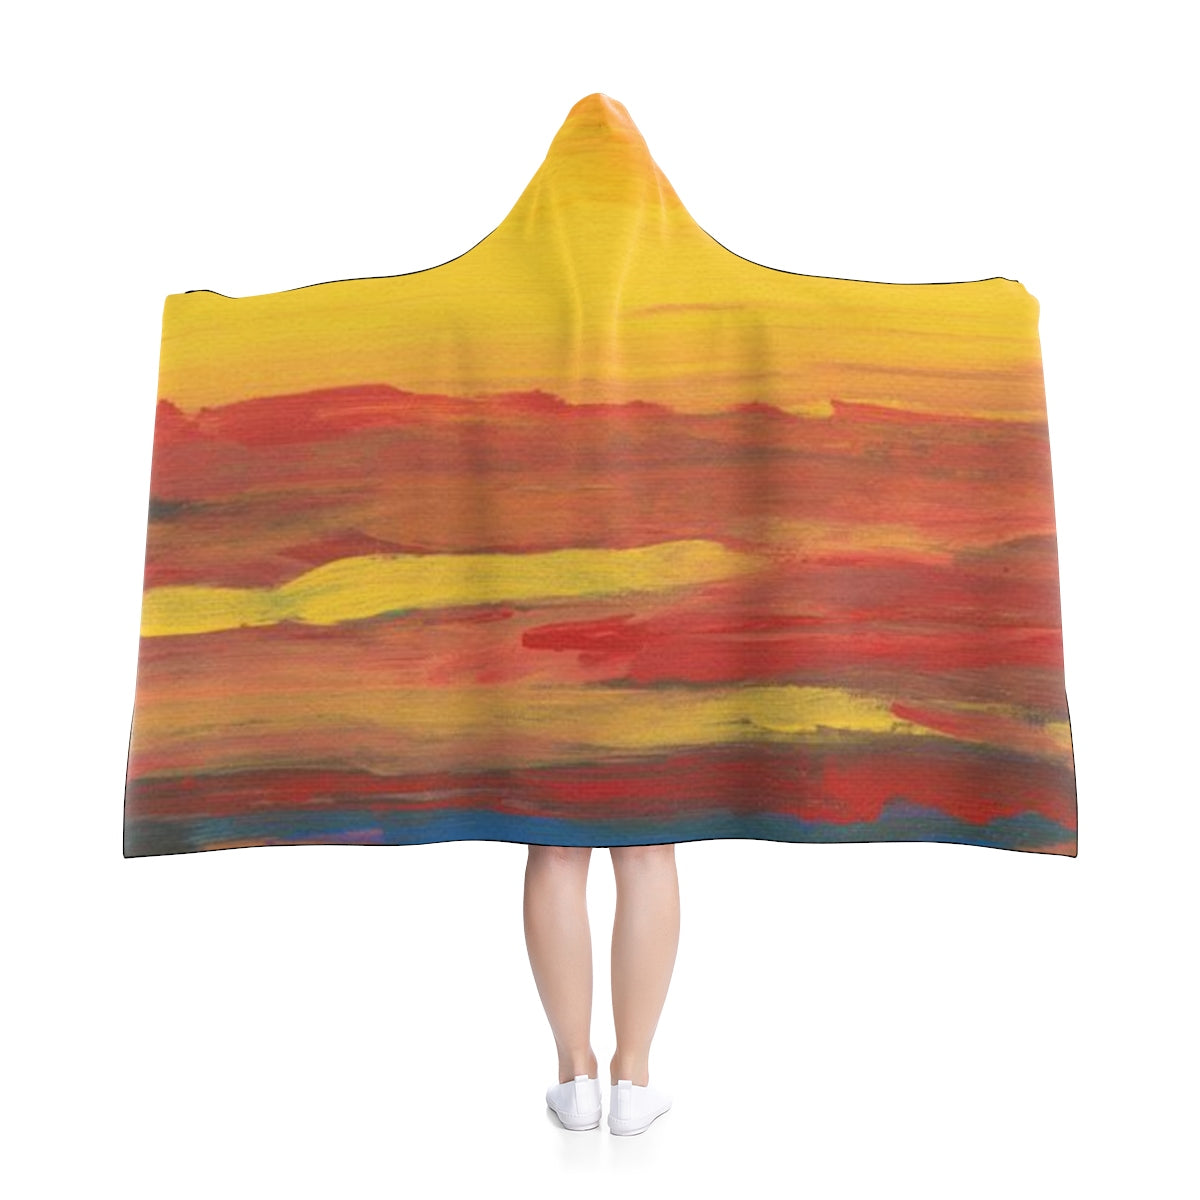 "SUNSRISE SUNSET Hooded Blanket 50"" x 40"""